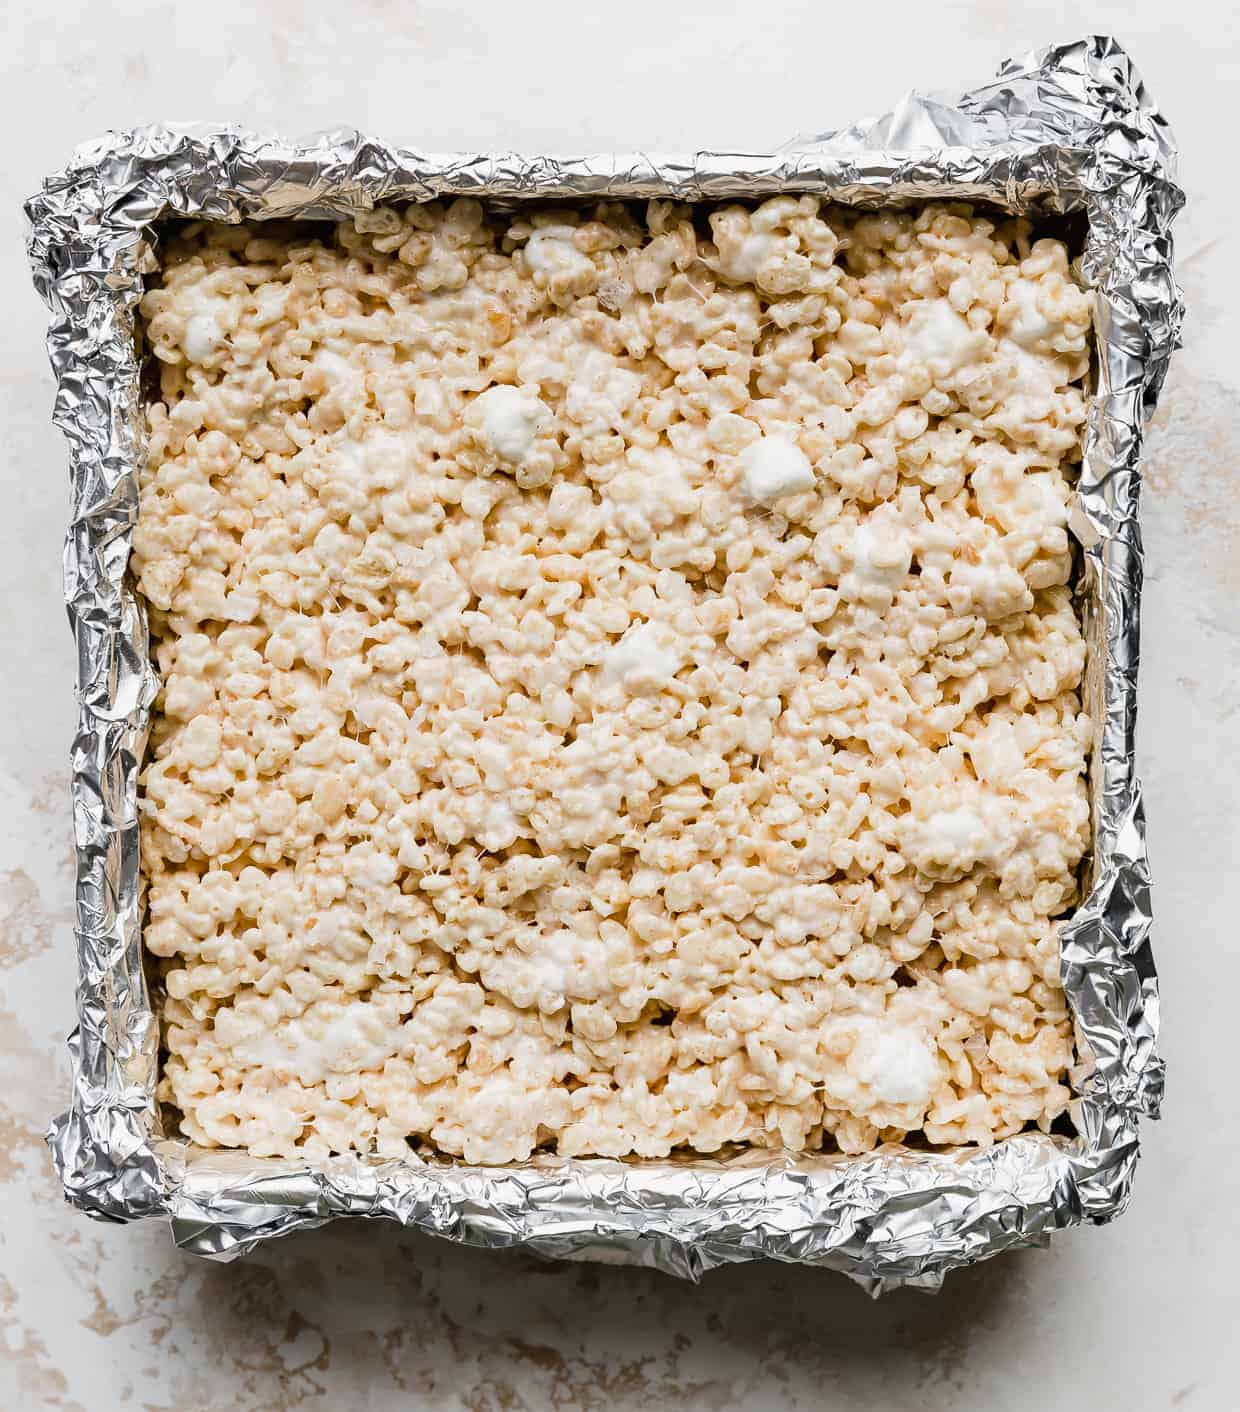 Salted Brown Butter Rice Krispie Treats pressed into a foil lined square pan against a white background.